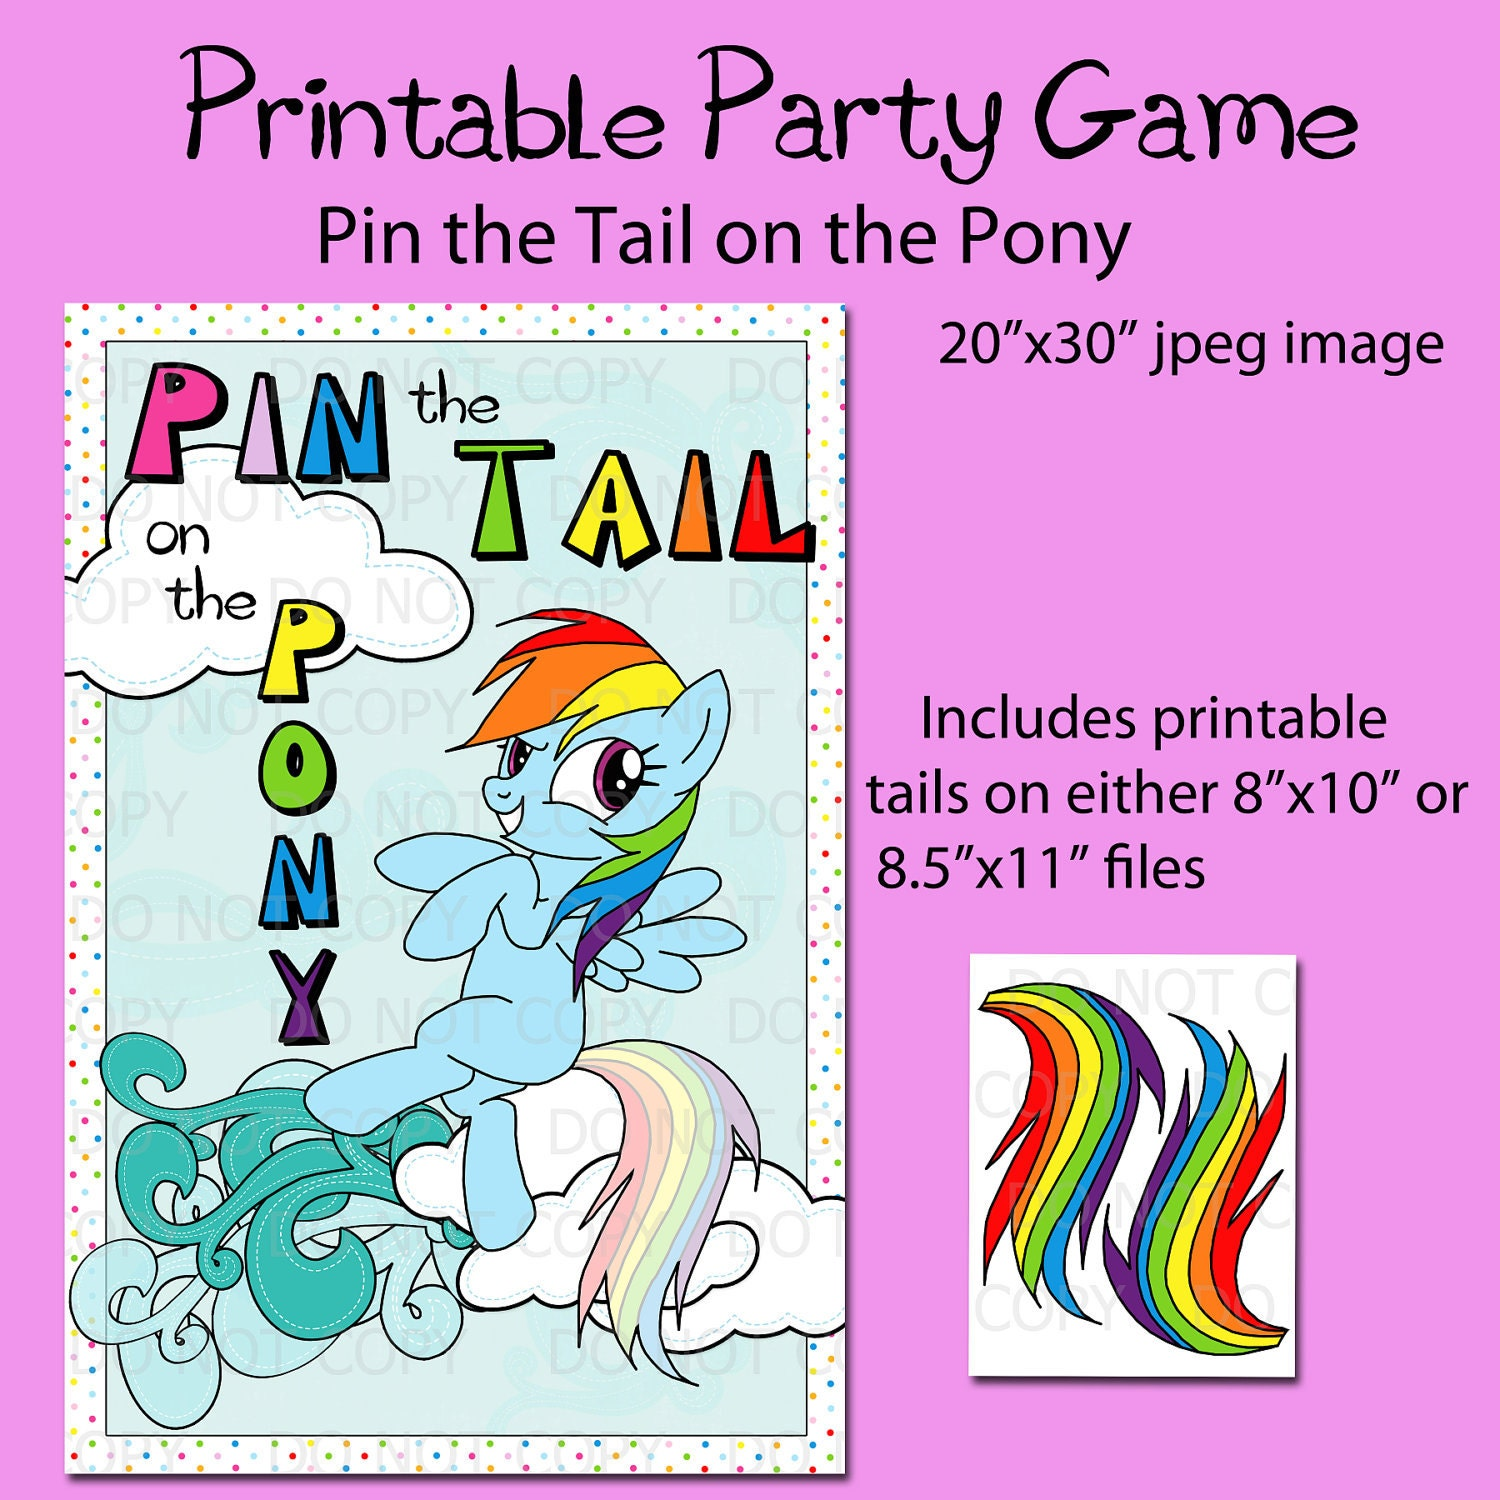 Best 20 Rainbow Party Games Ideas On Pinterest: Printable DIY Pin The Tail On The Pony Game Party Poster